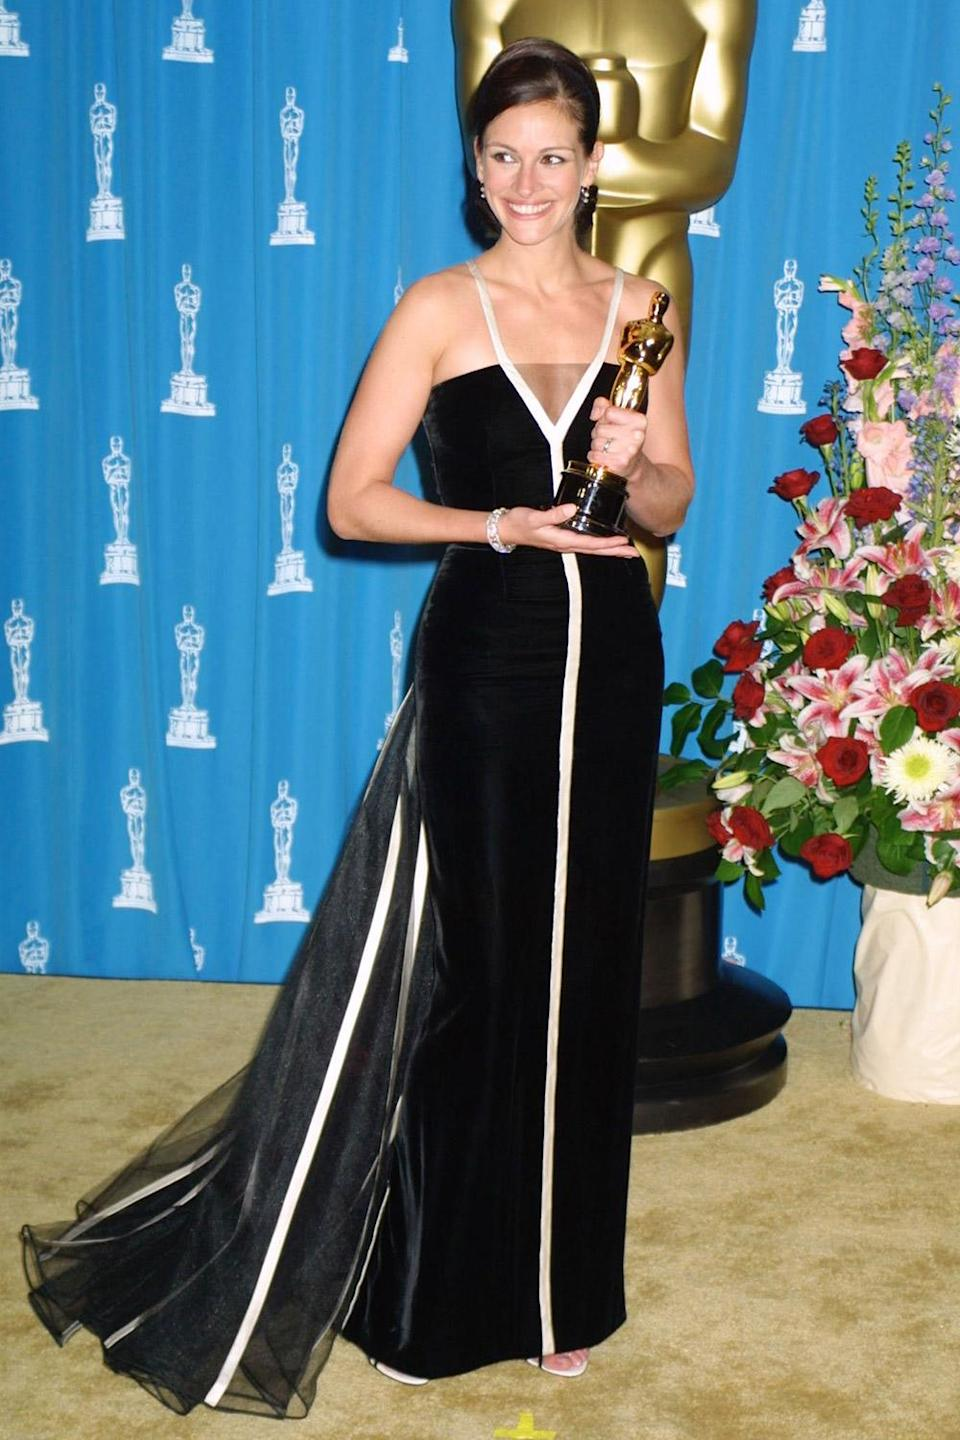 <p>Julia Roberts smiled as she posed with her Academy Award for Best Actress, which she won playing the titular role in <em>Erin Brockovich.</em></p>